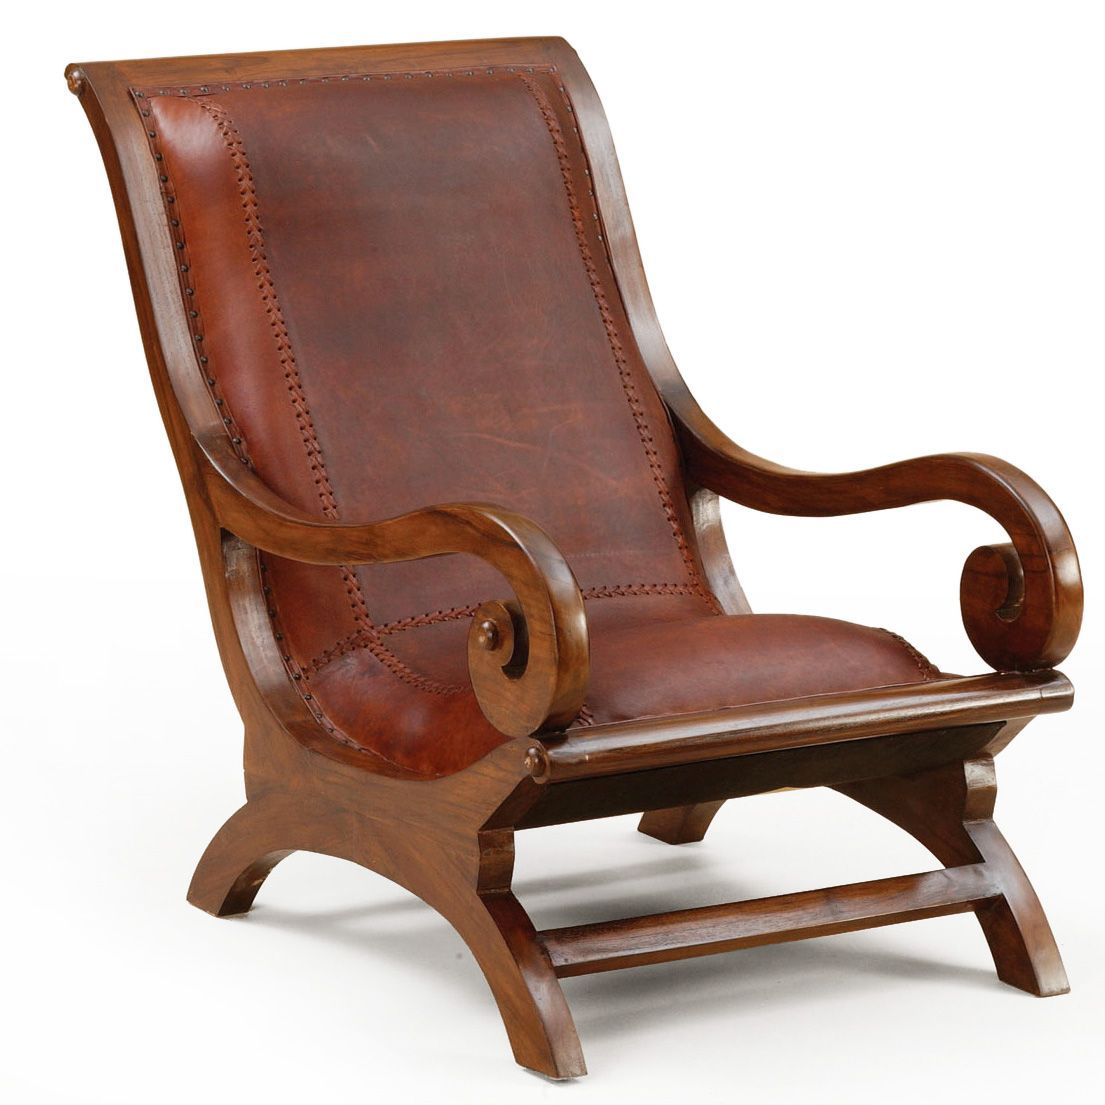 Lazy chair leather seat handmade of teak wood Couch